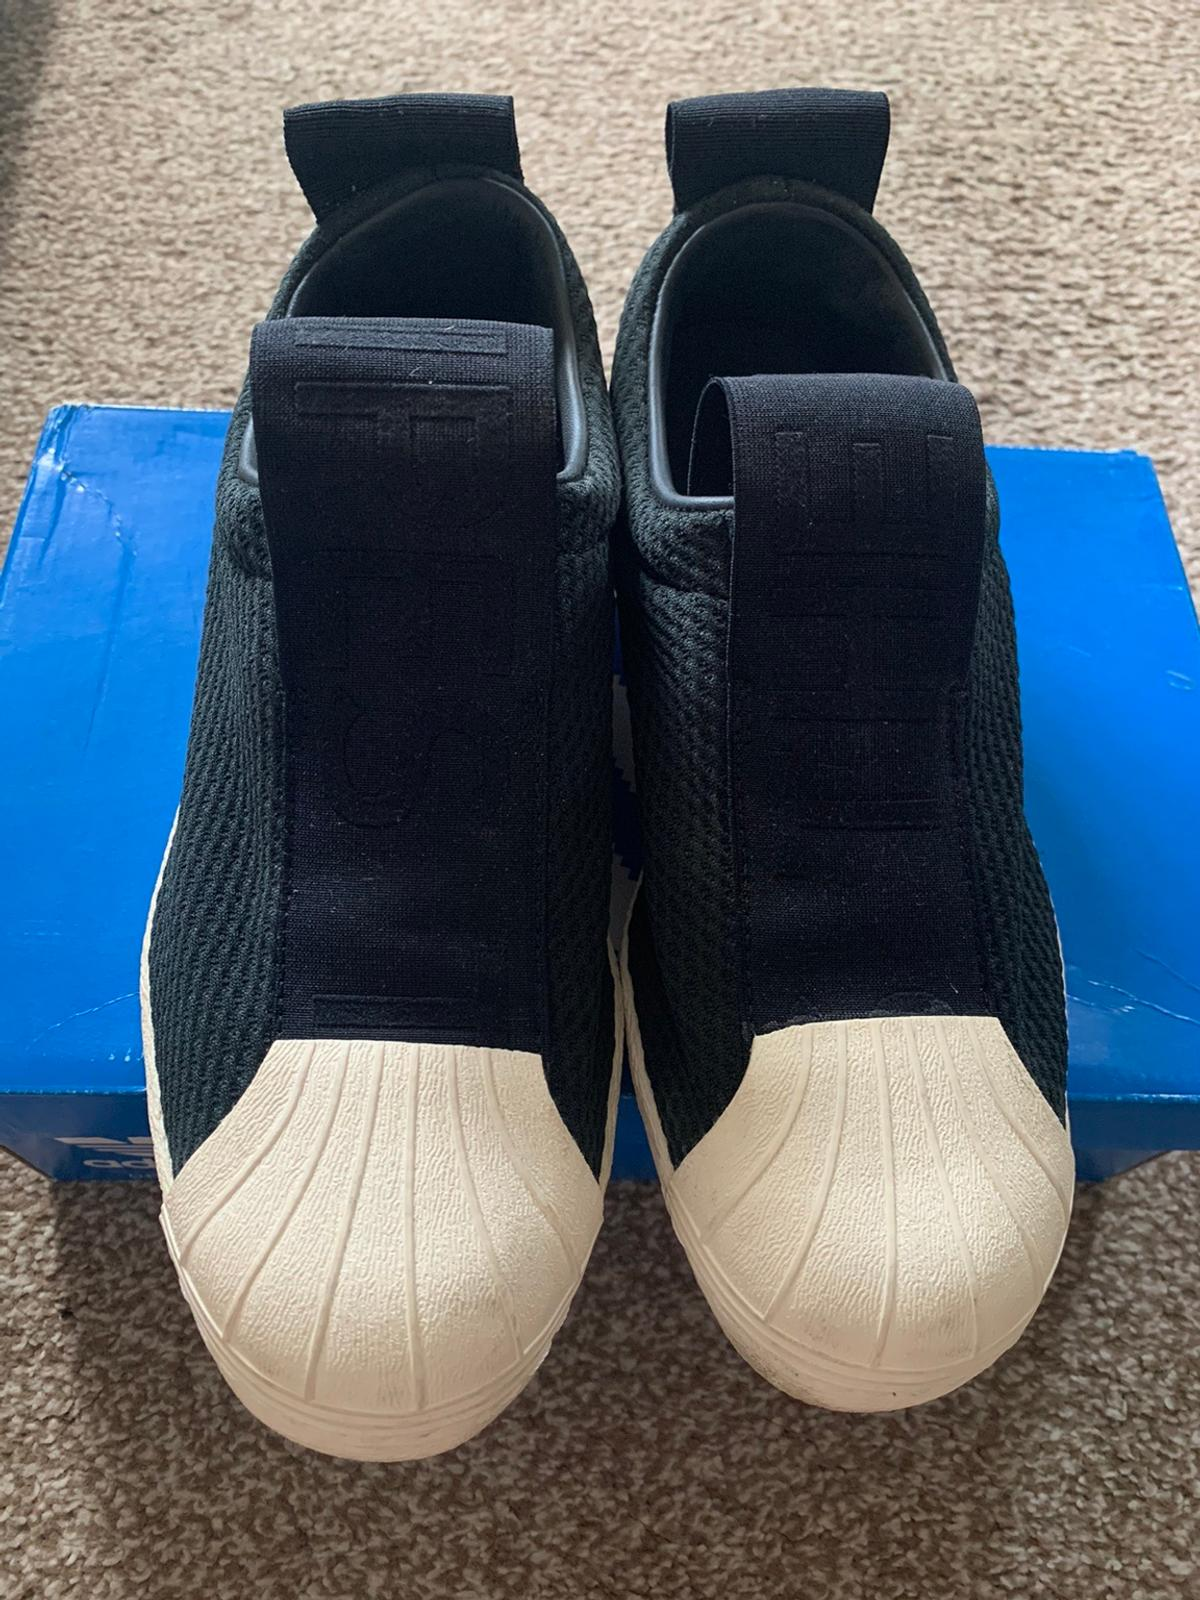 Like new, literally only worn twice for a very short amount of time.  Comes in original box. UK size 6.5 but I'm usually a size 6 & fits me comfortably.  Pet free & smoke free home